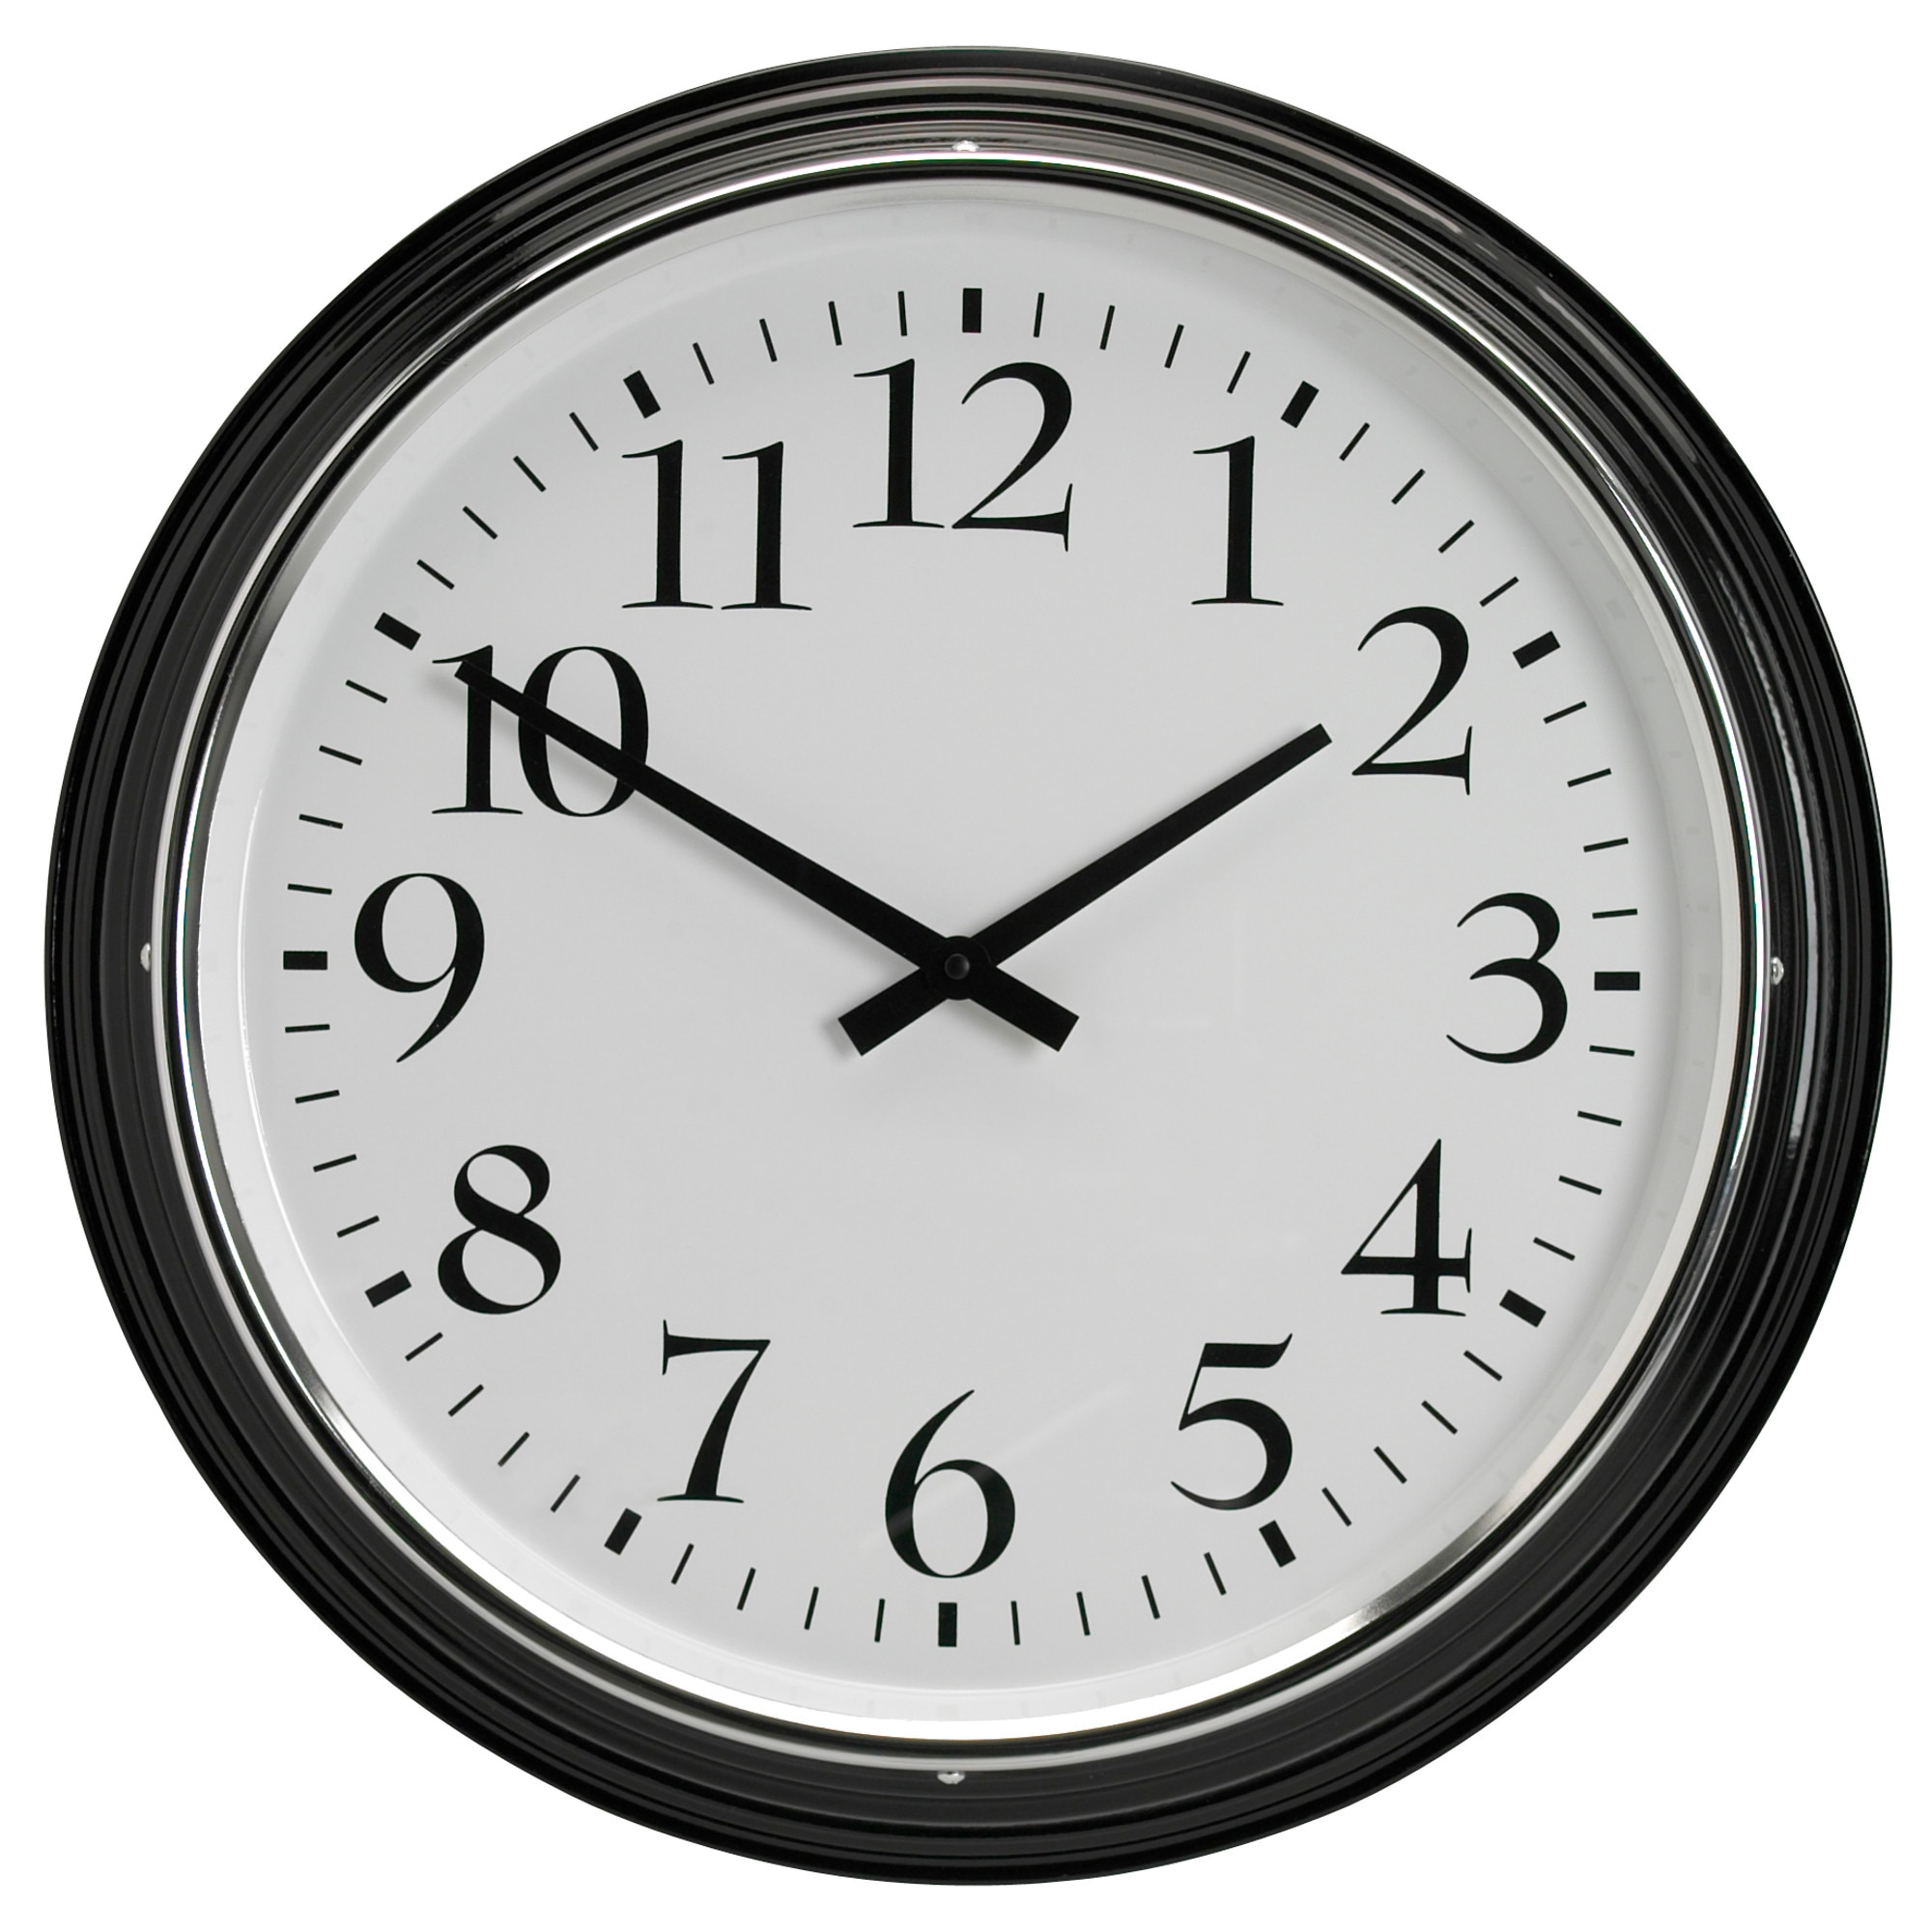 Wall clocks table clocks ikea bravur wall clock black depth 3 diameter 23 depth amipublicfo Image collections